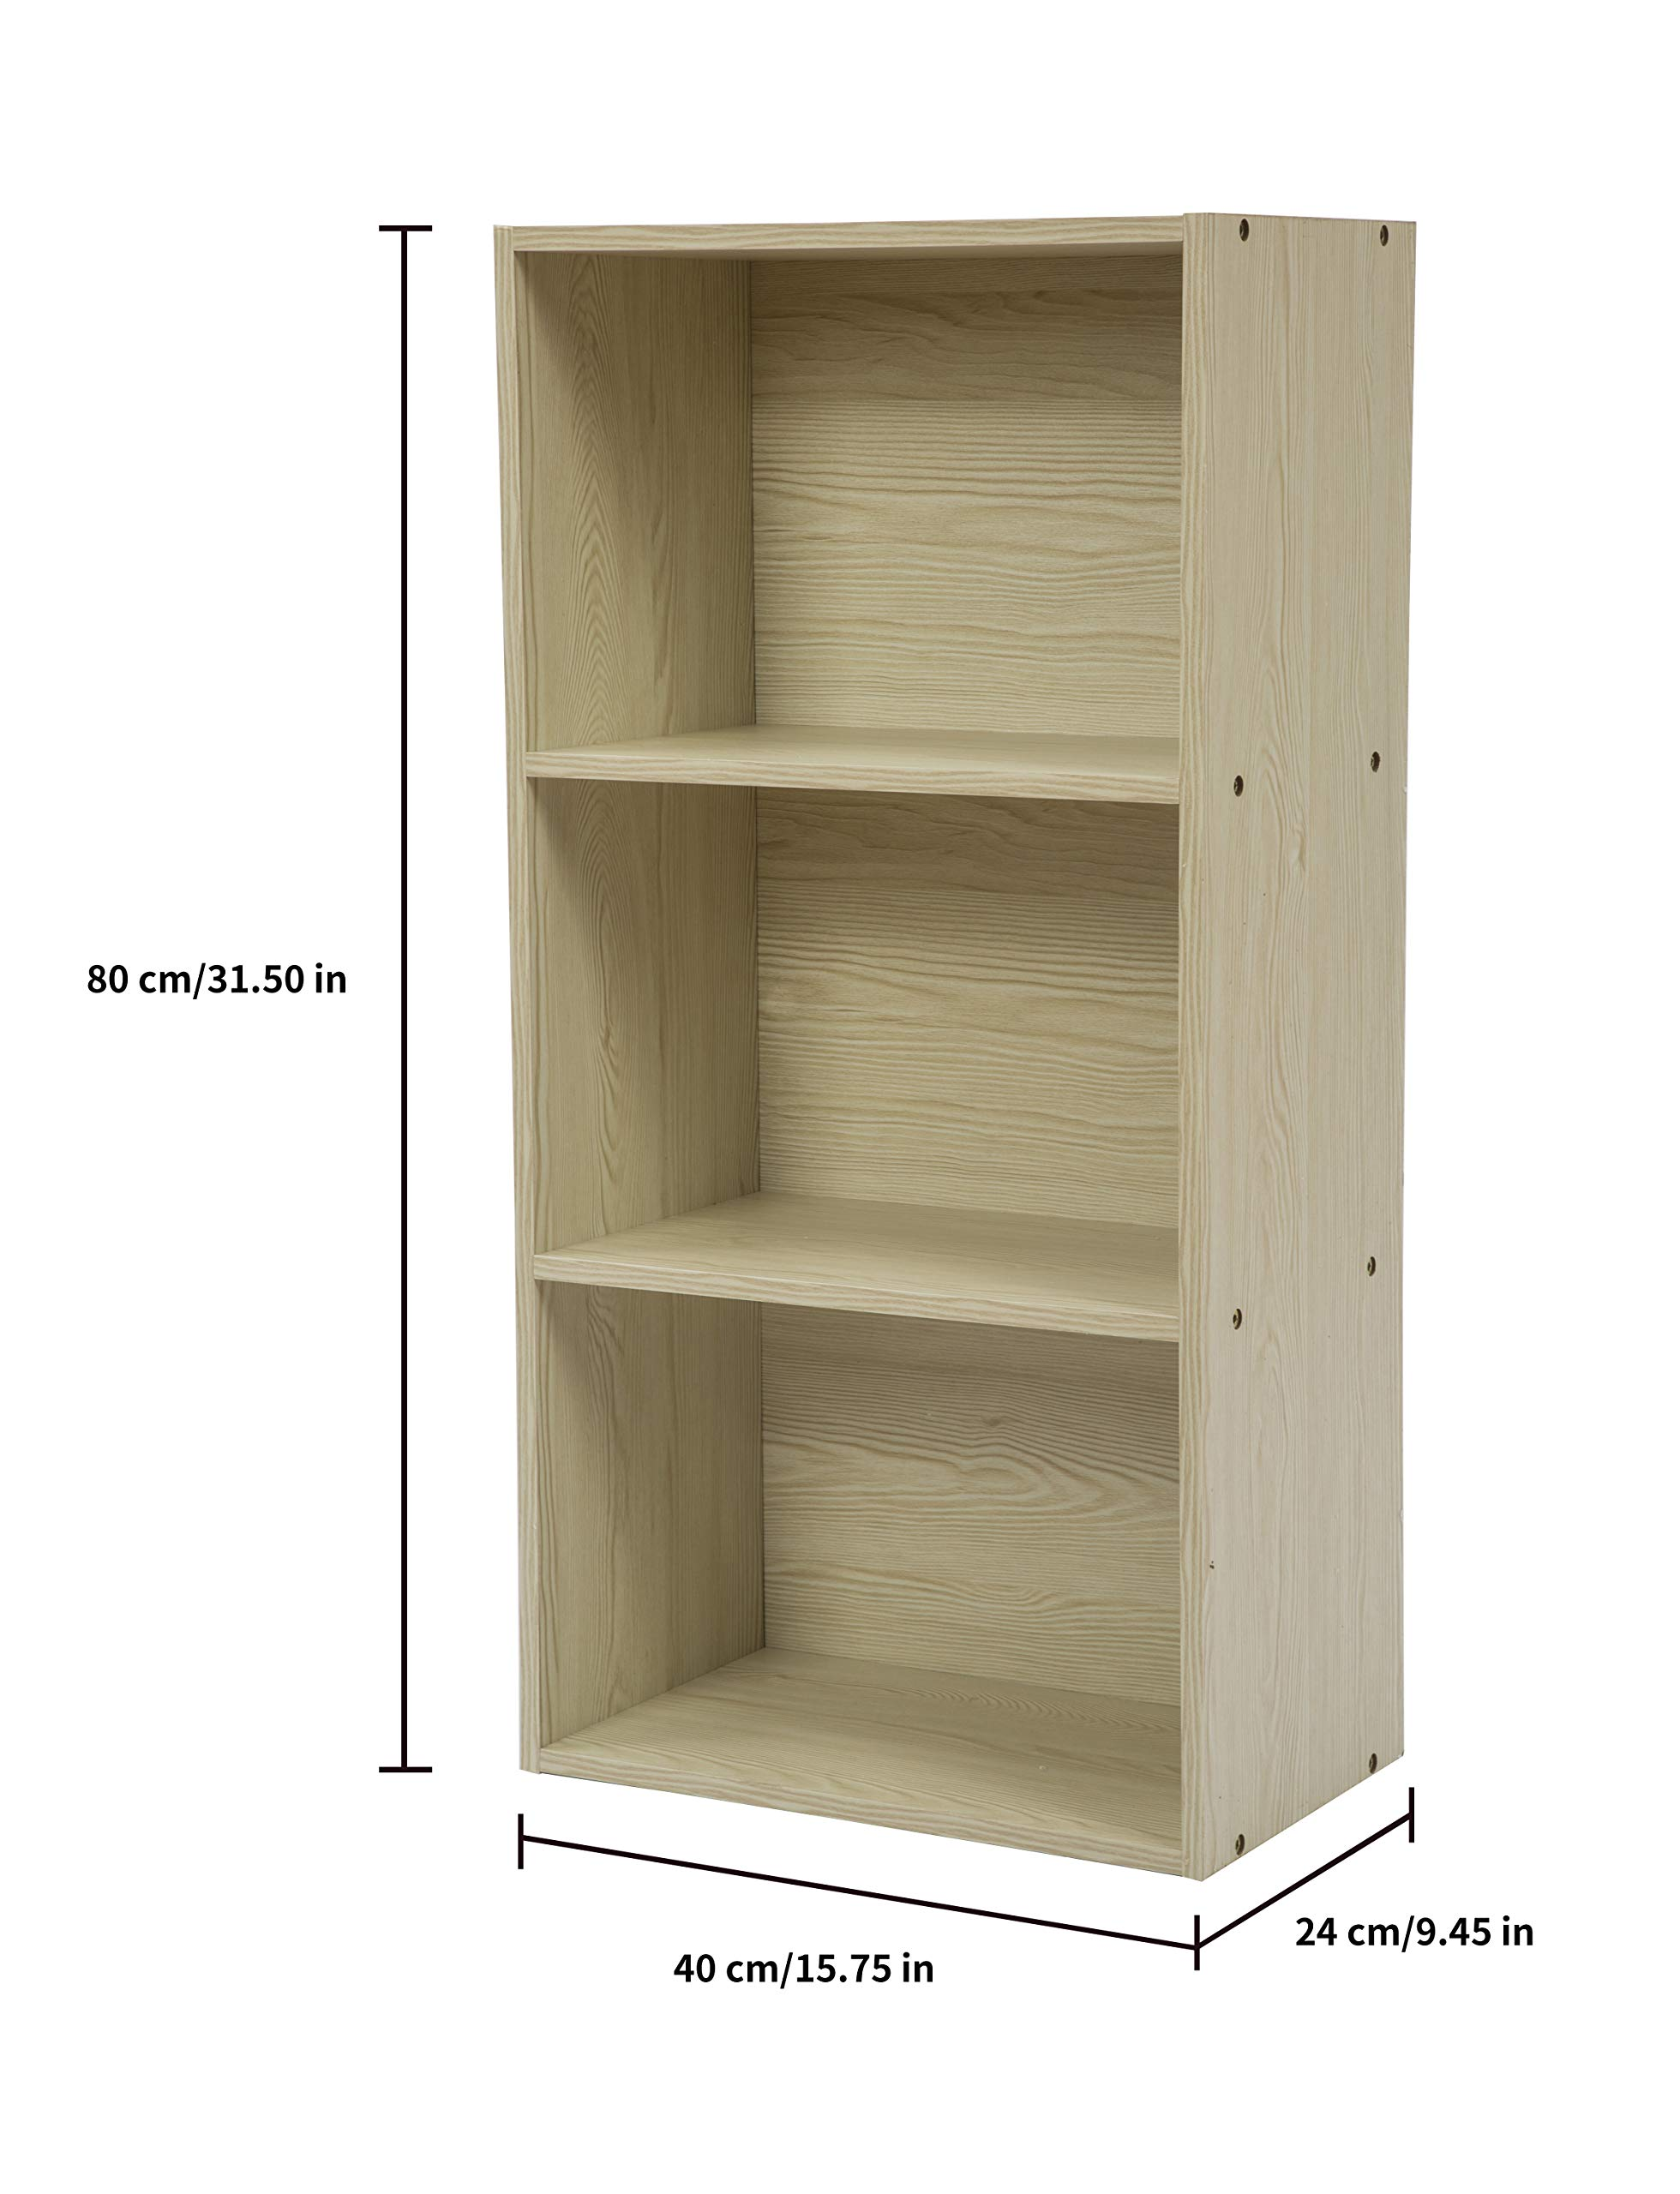 JEROAL 3-Shelf Wooden Bookshelf, 3 Cube Storage Organizer, Display Bookshelf Storage Organizer for Books, Pictures, Decorations, White Oak by JEROAL (Image #4)